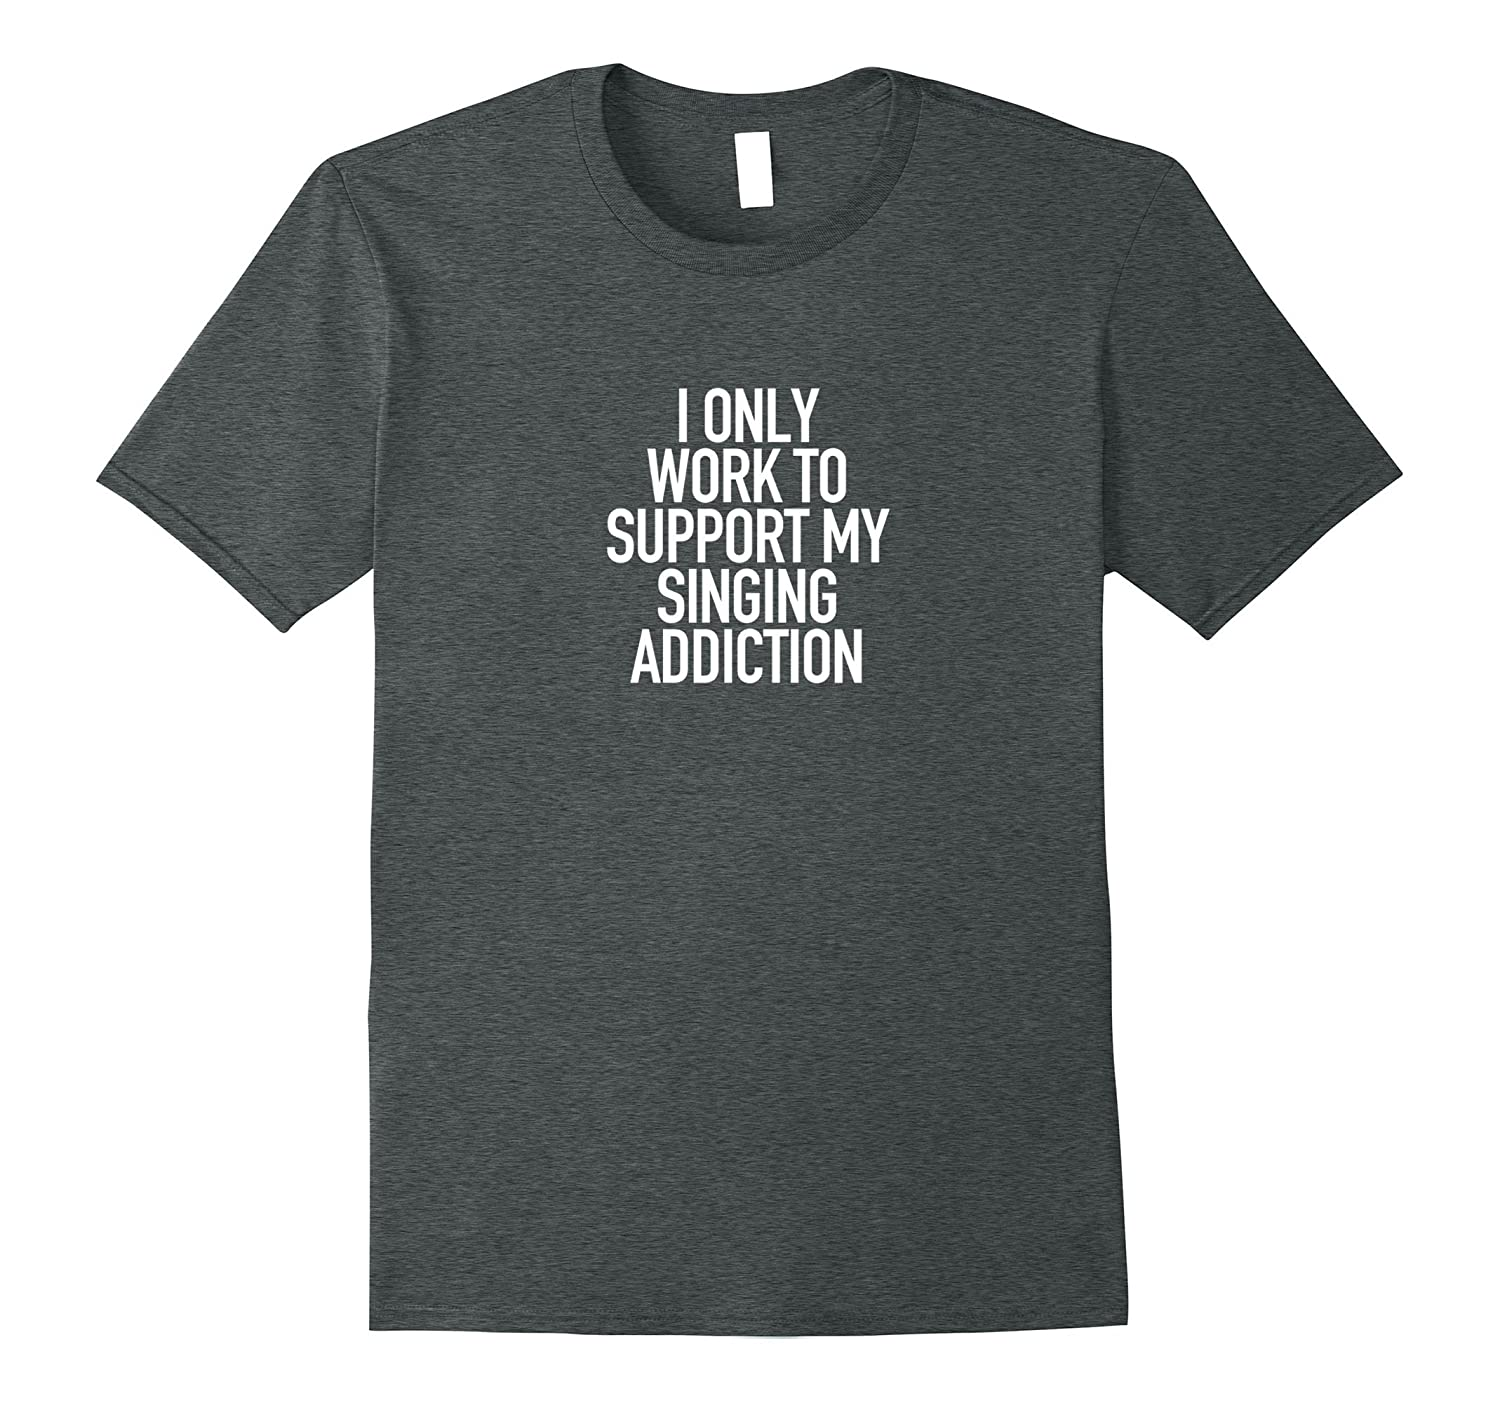 I only work to support my Singing addiction - Funny Tshirt-Art